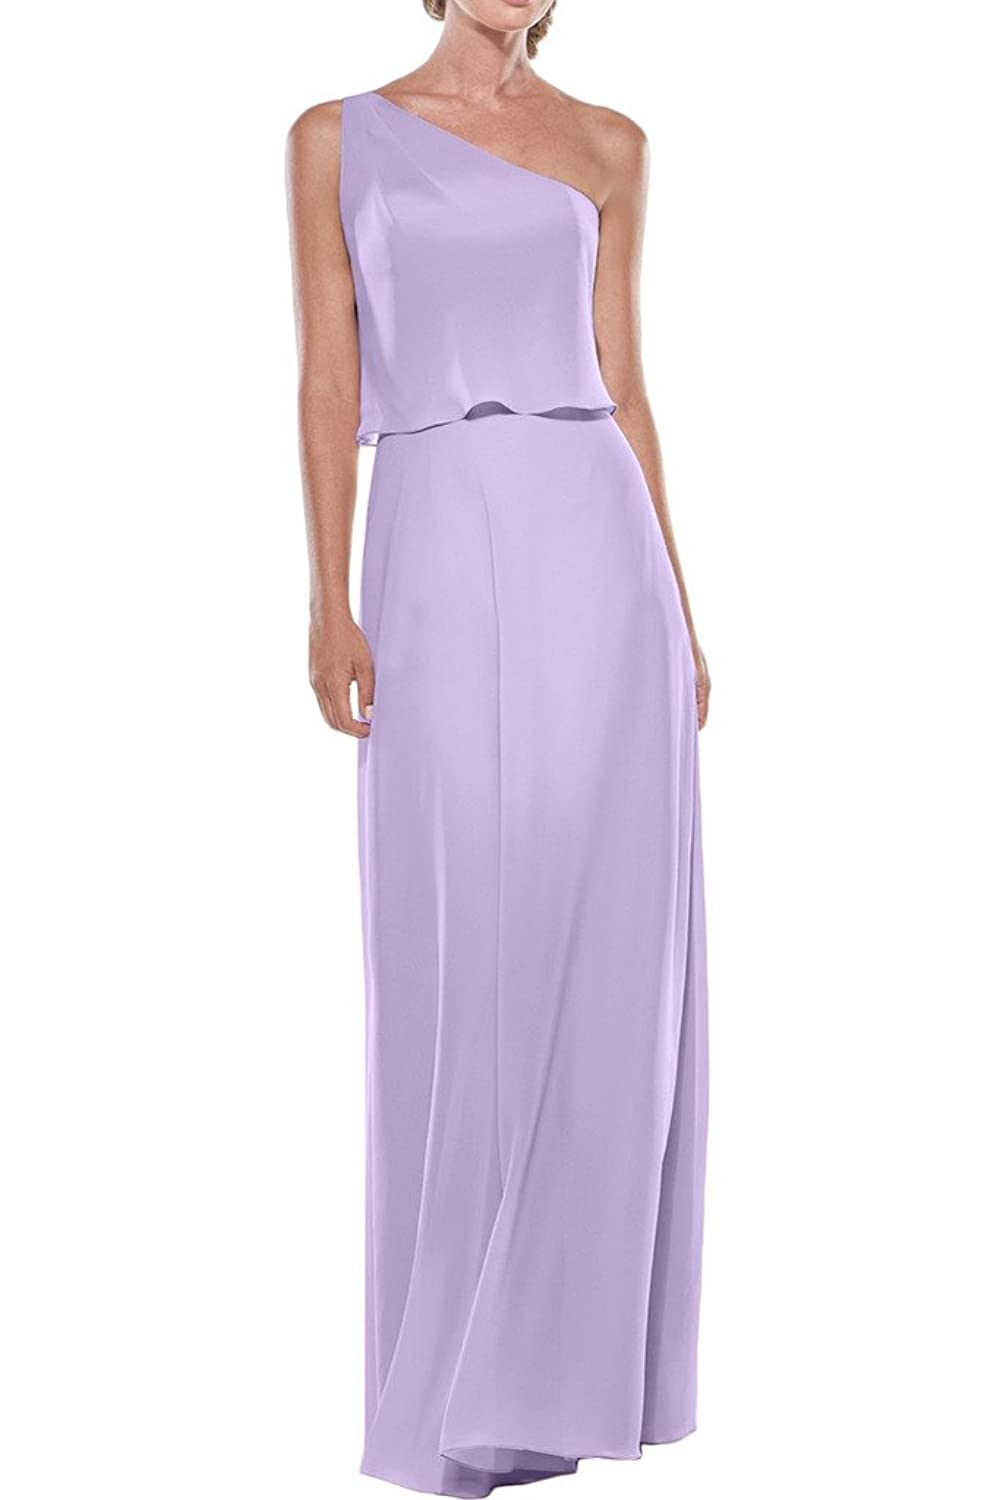 Gorgeous Bride Sheath One-shoulder Bridesmaid Prom Evening Dresses Long